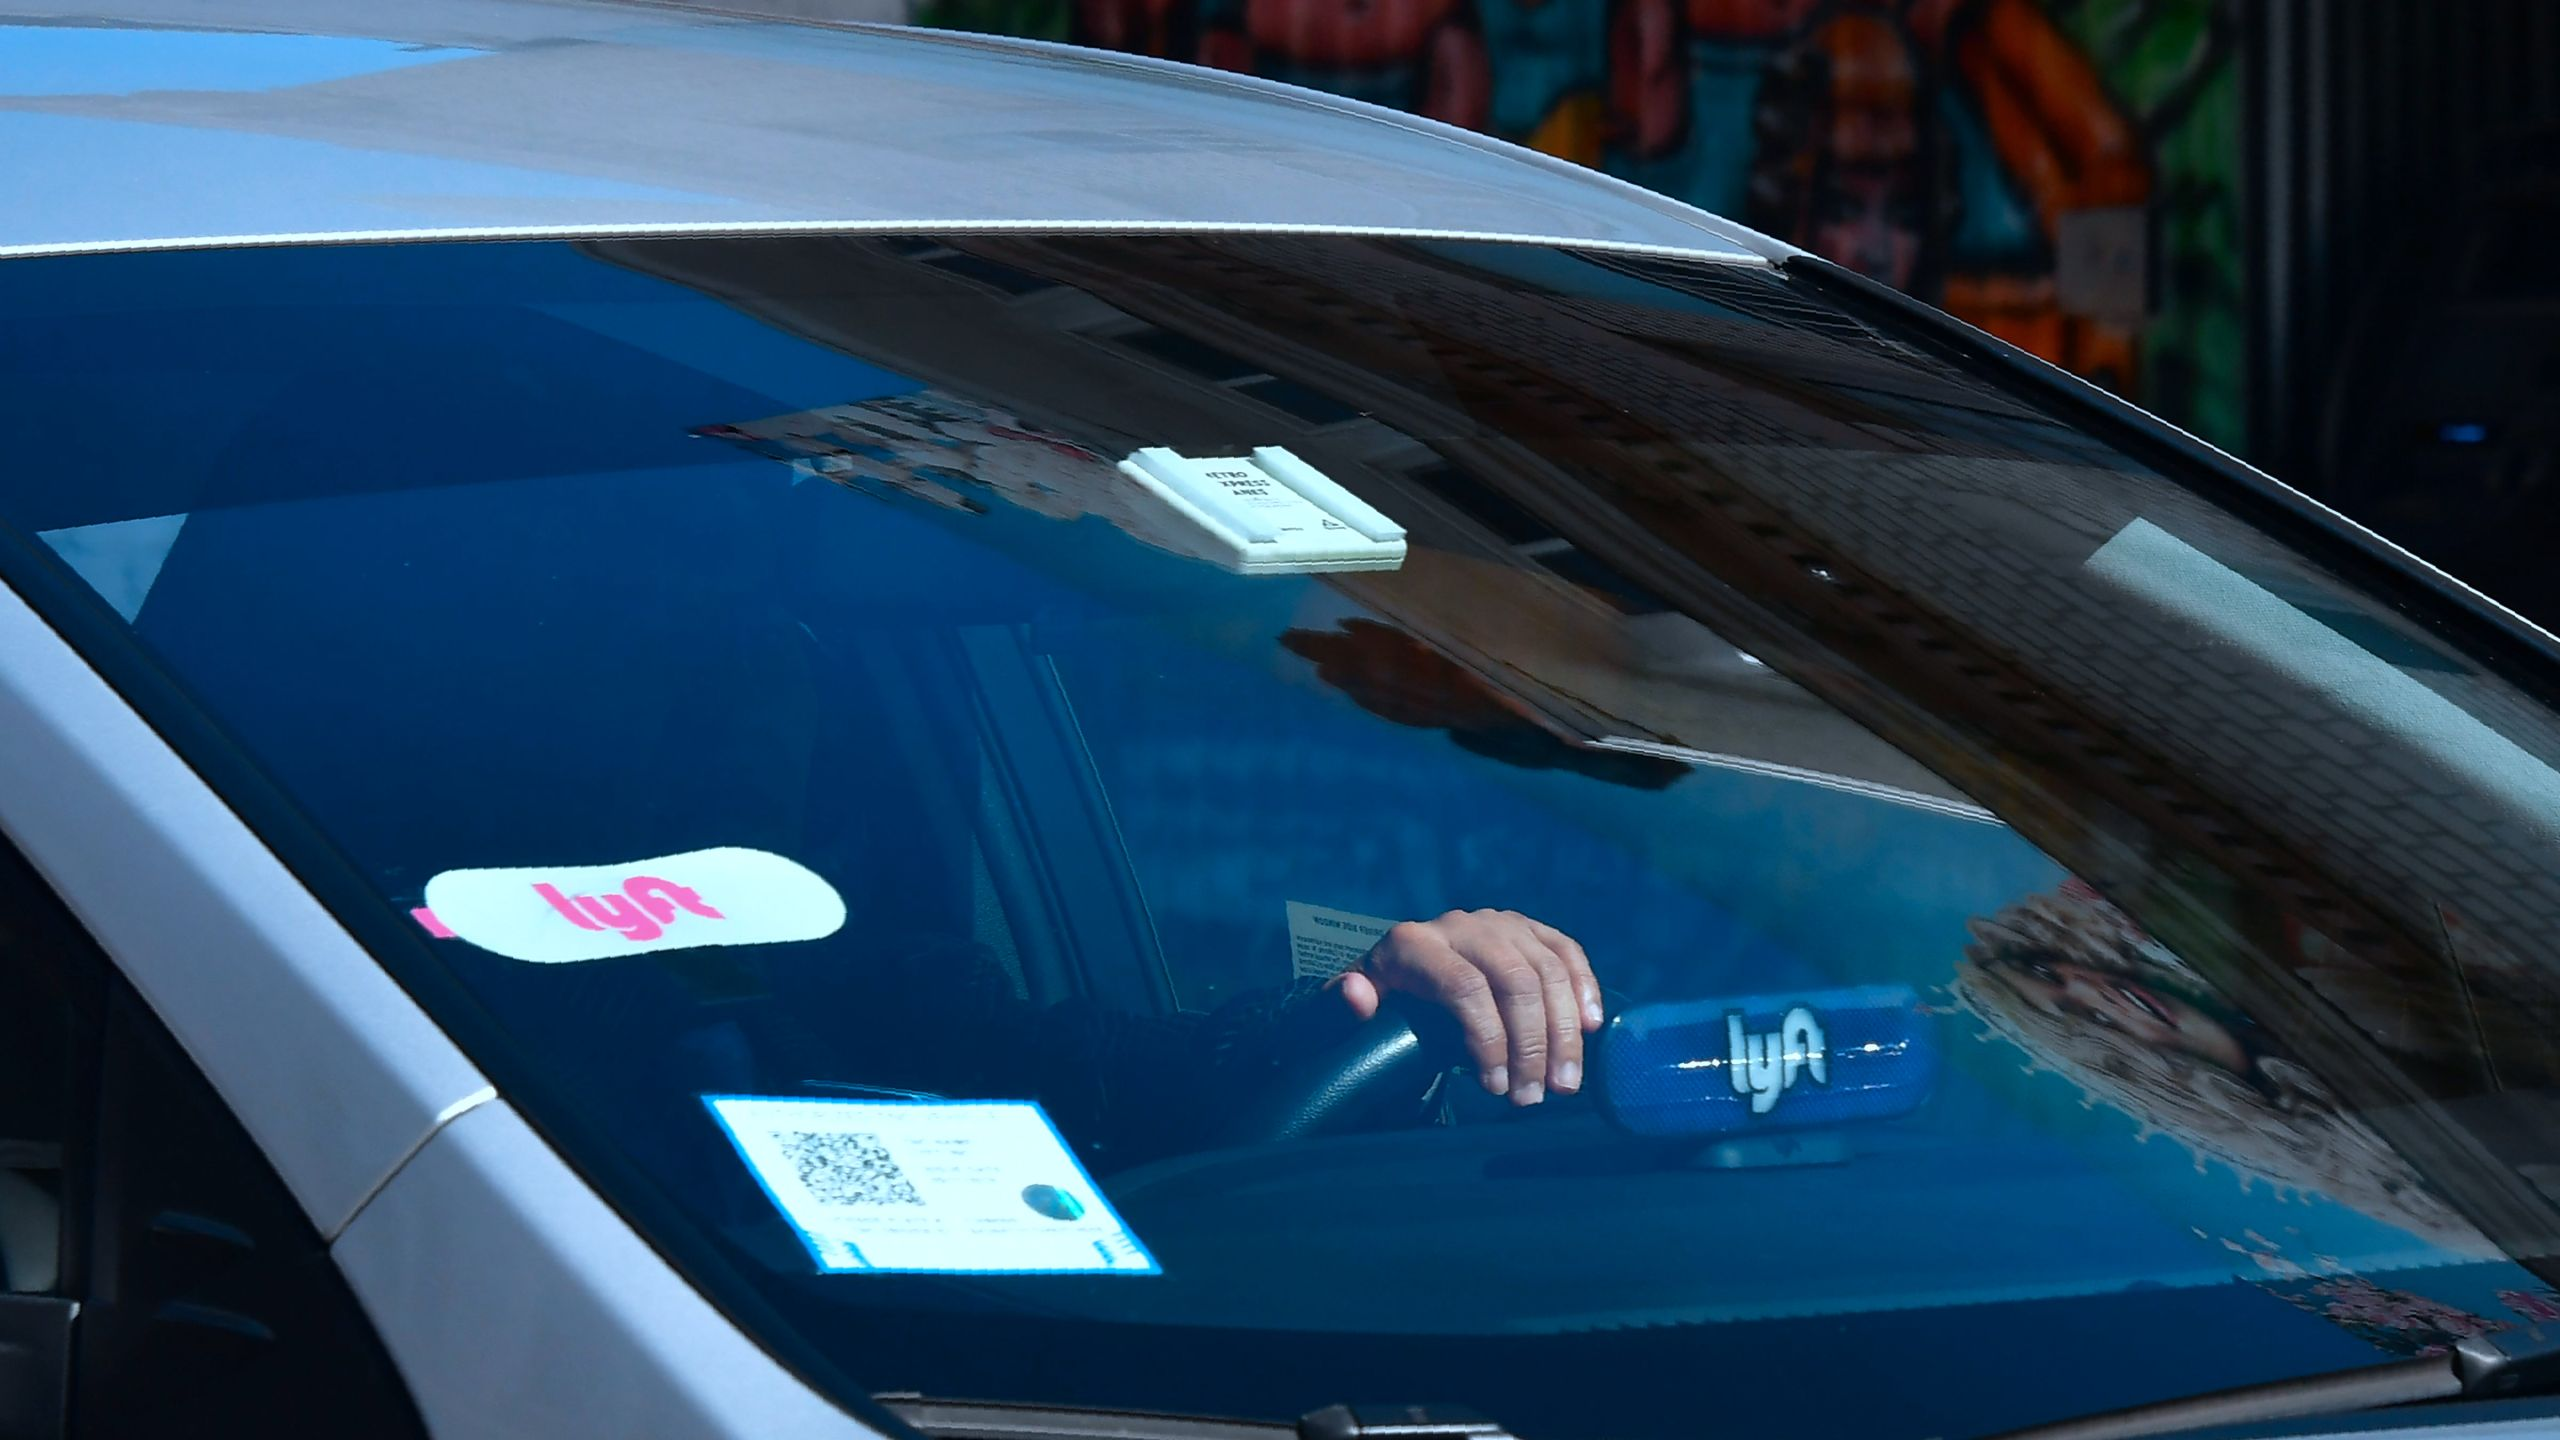 A driver with the Lyft decal on his vehicle cruises Hollywood on Feb. 21, 2019. (Credit: Frederic J. Brown / AFP / Getty Images)